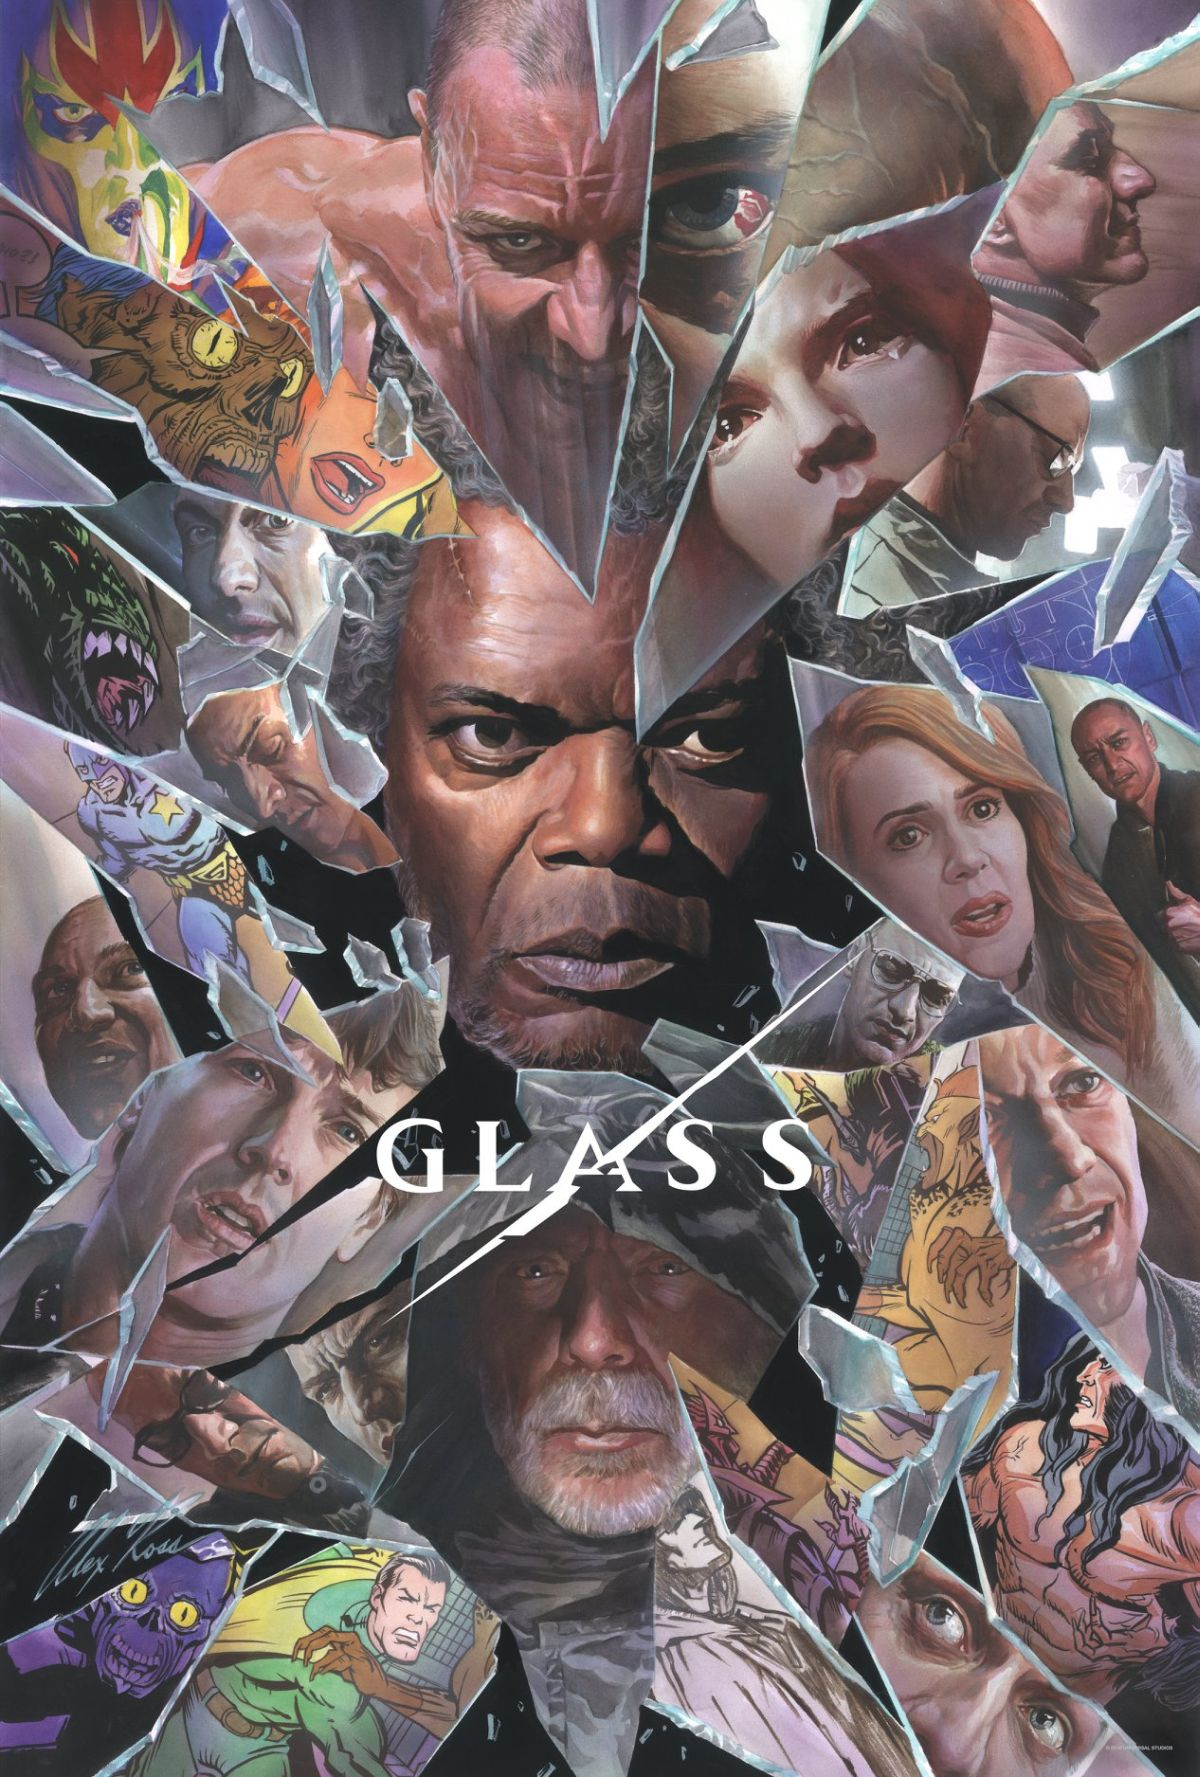 New Glass Trailer Asks Us This Important Question